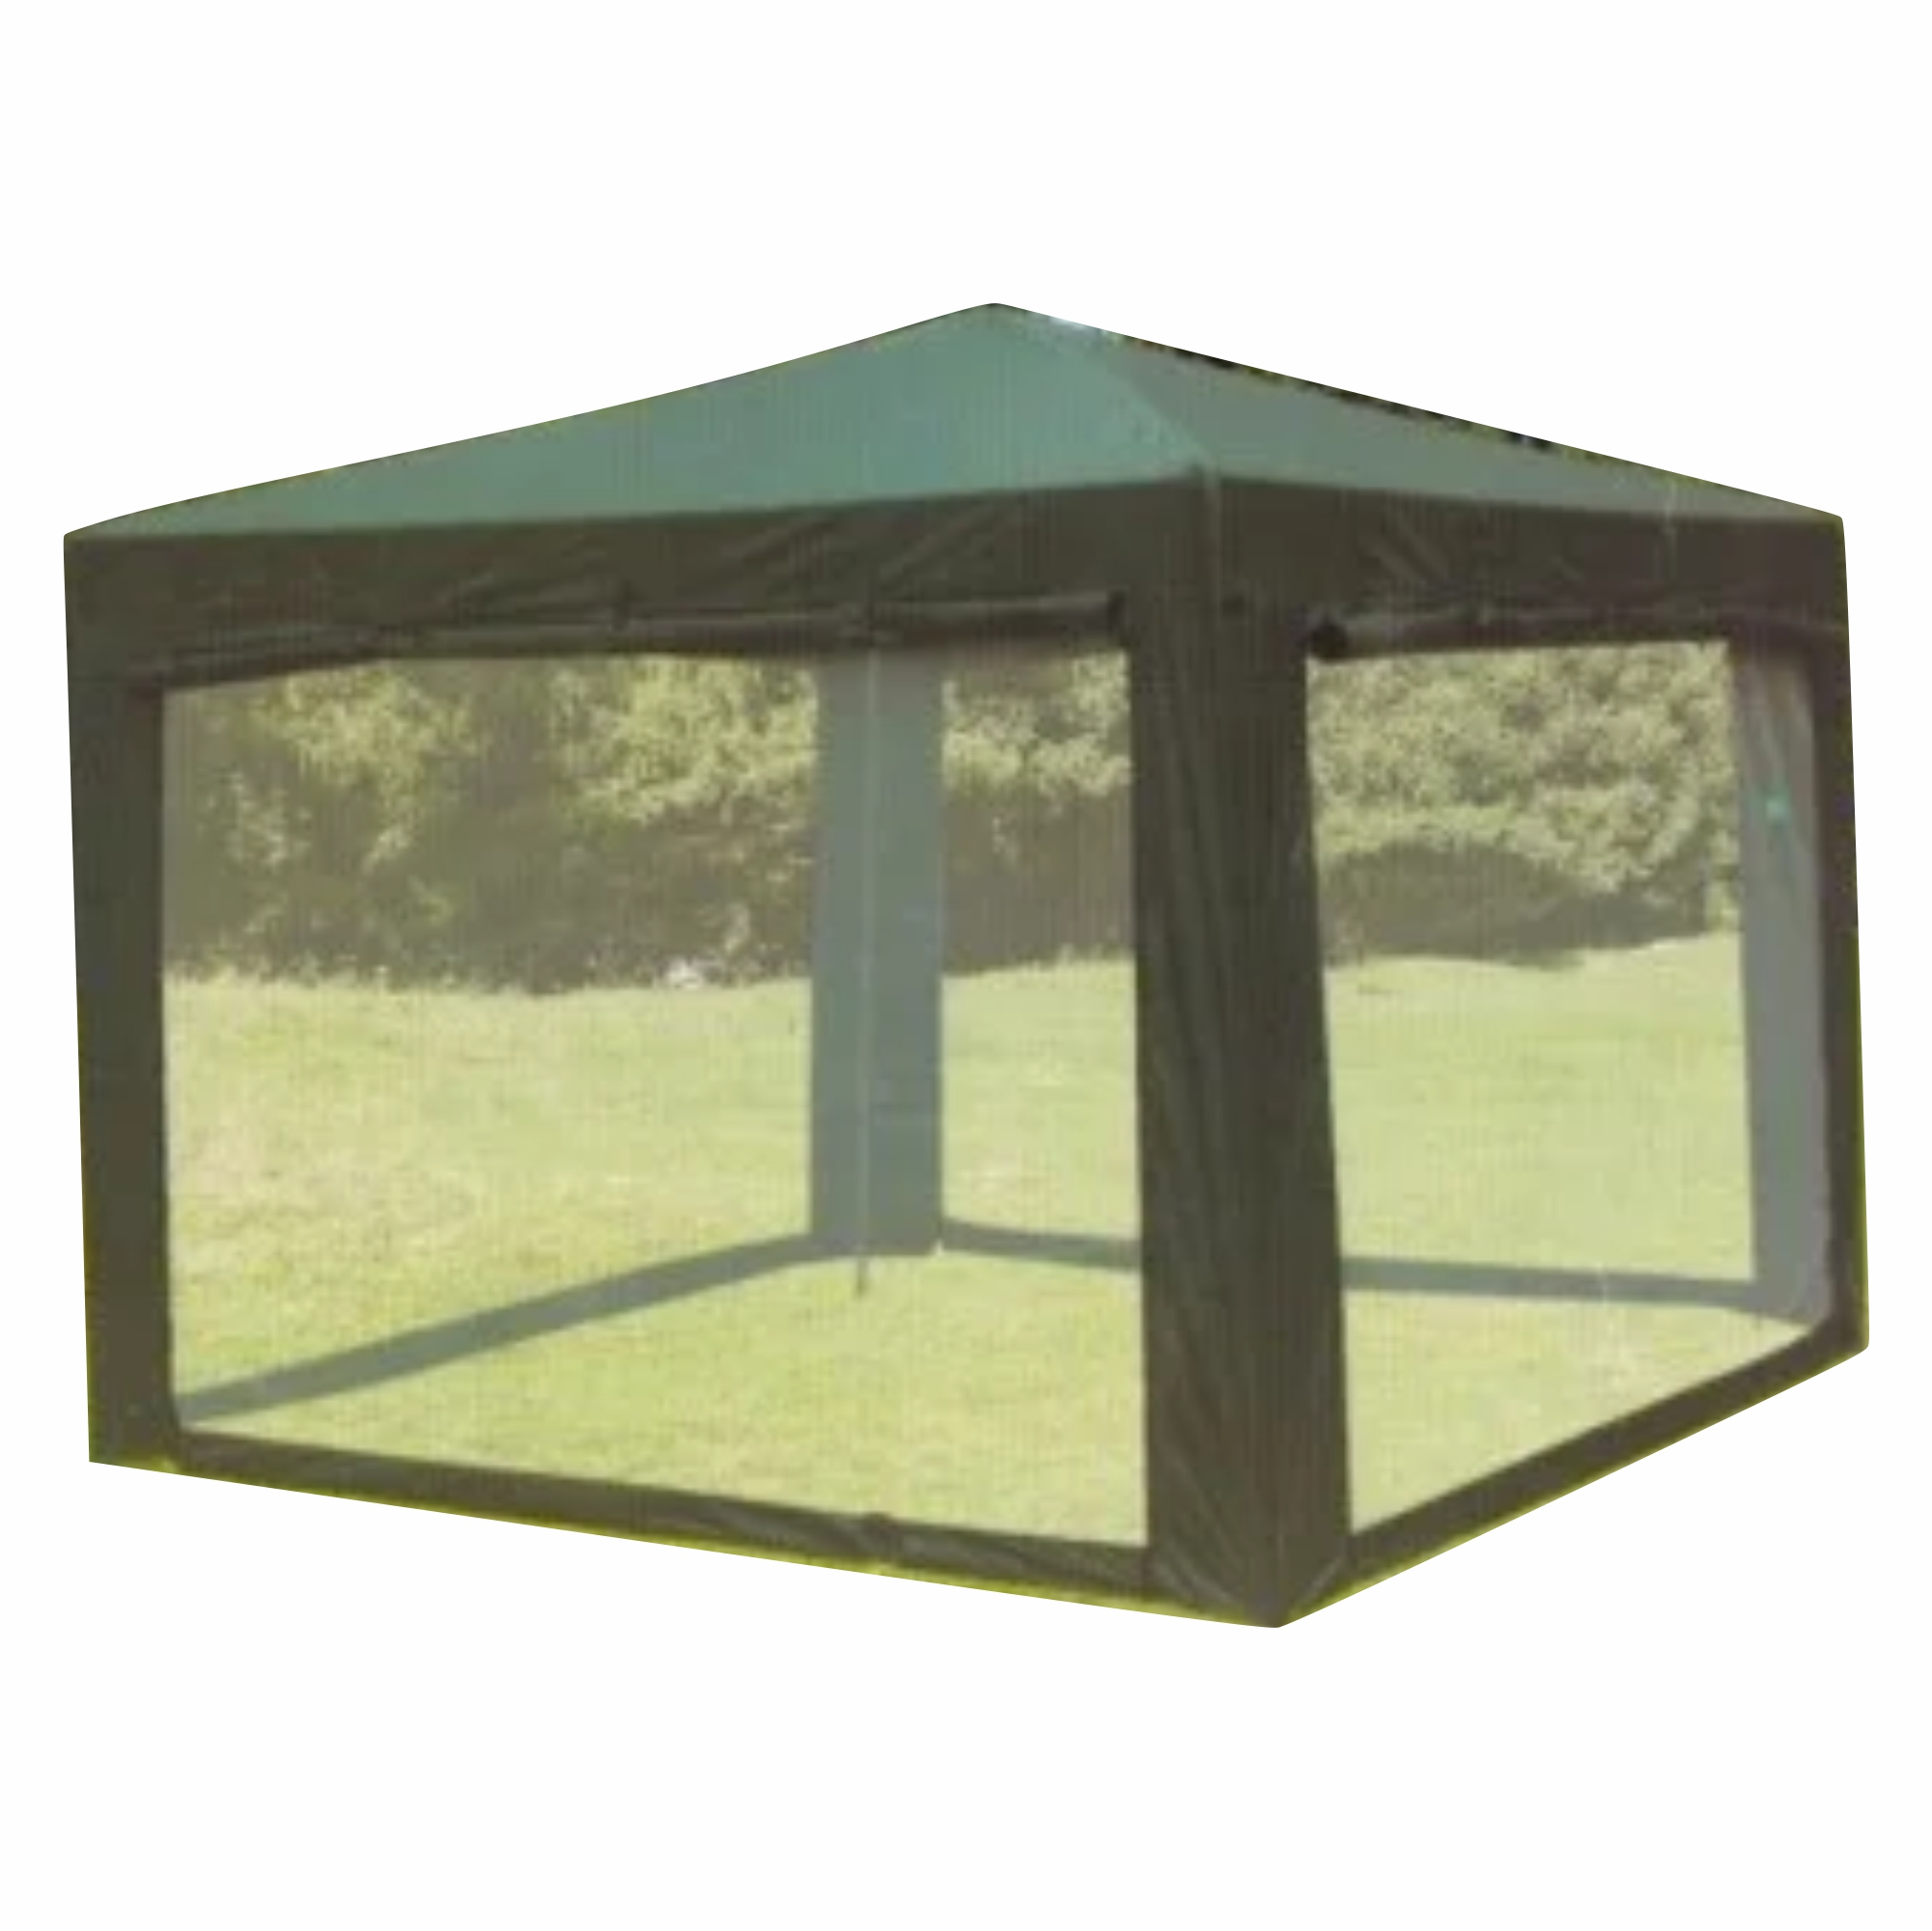 Gazebo Tent 1628 With Summer Travel Fishing Leisure Automatic All For Summer Fishing 5-6 Person Hiking And Leisure